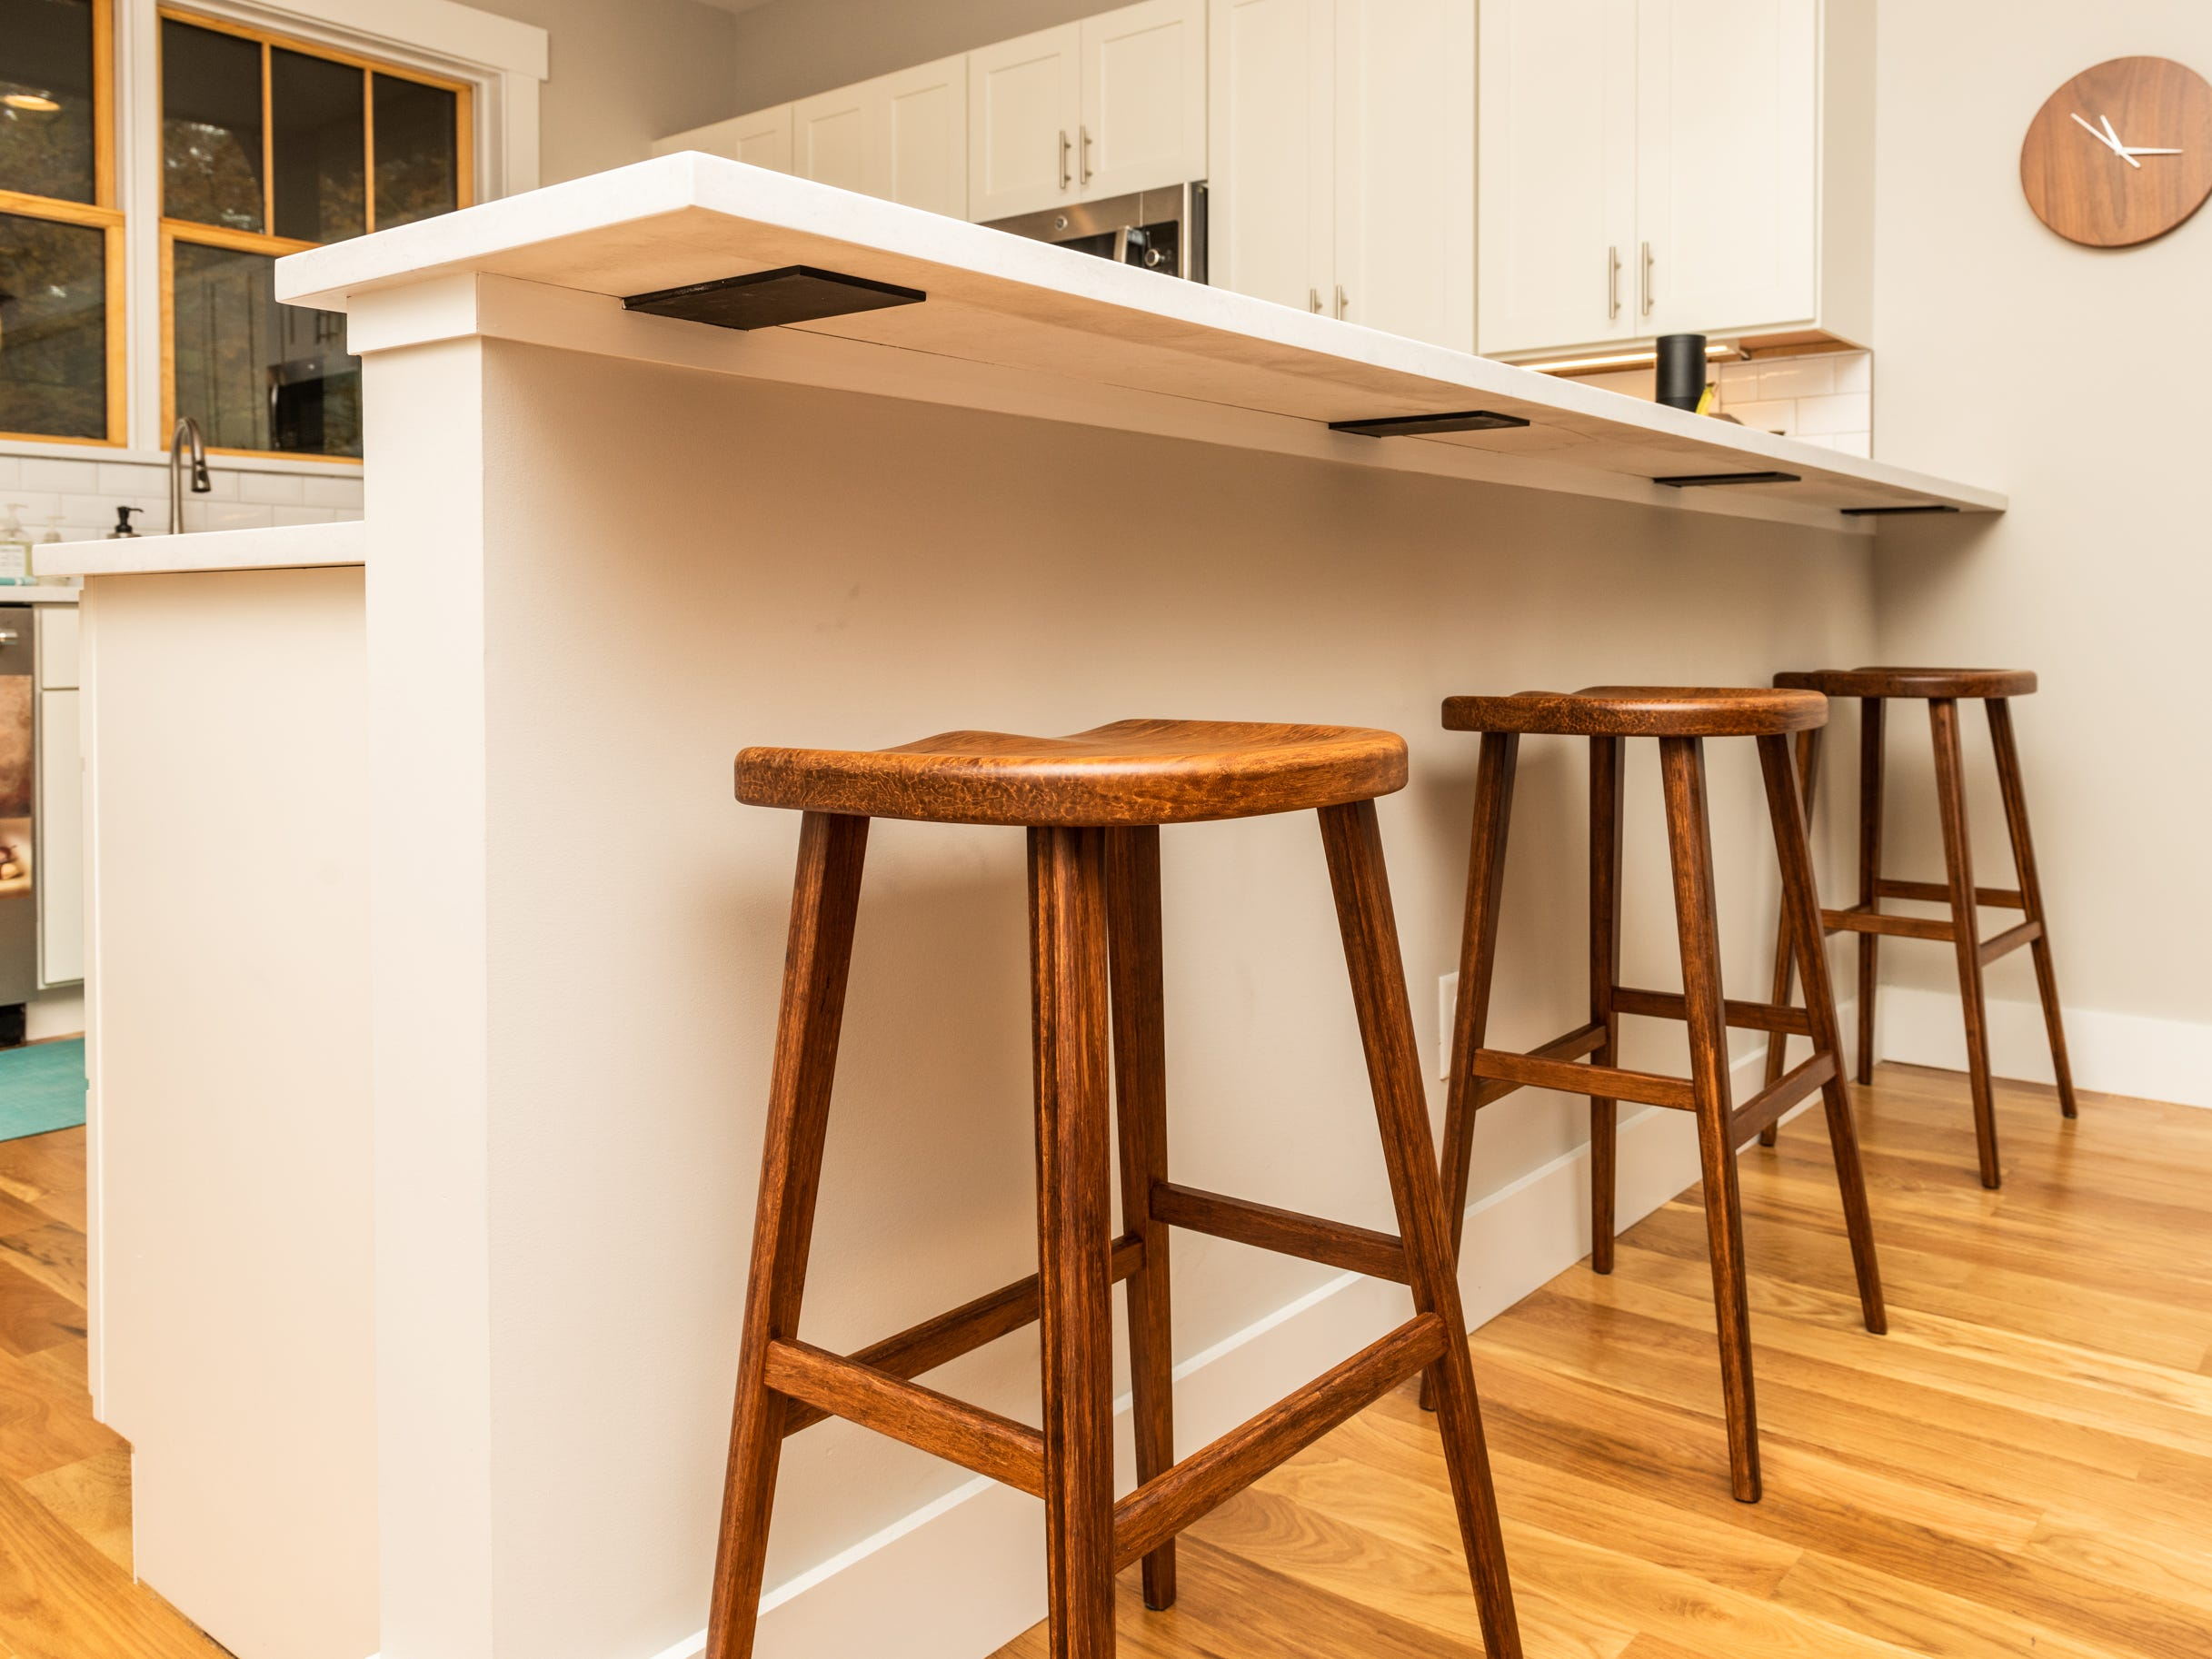 Bar stools in the kitchen at the home of Pat and Ron Hart in Asheville's Montford neighborhood.